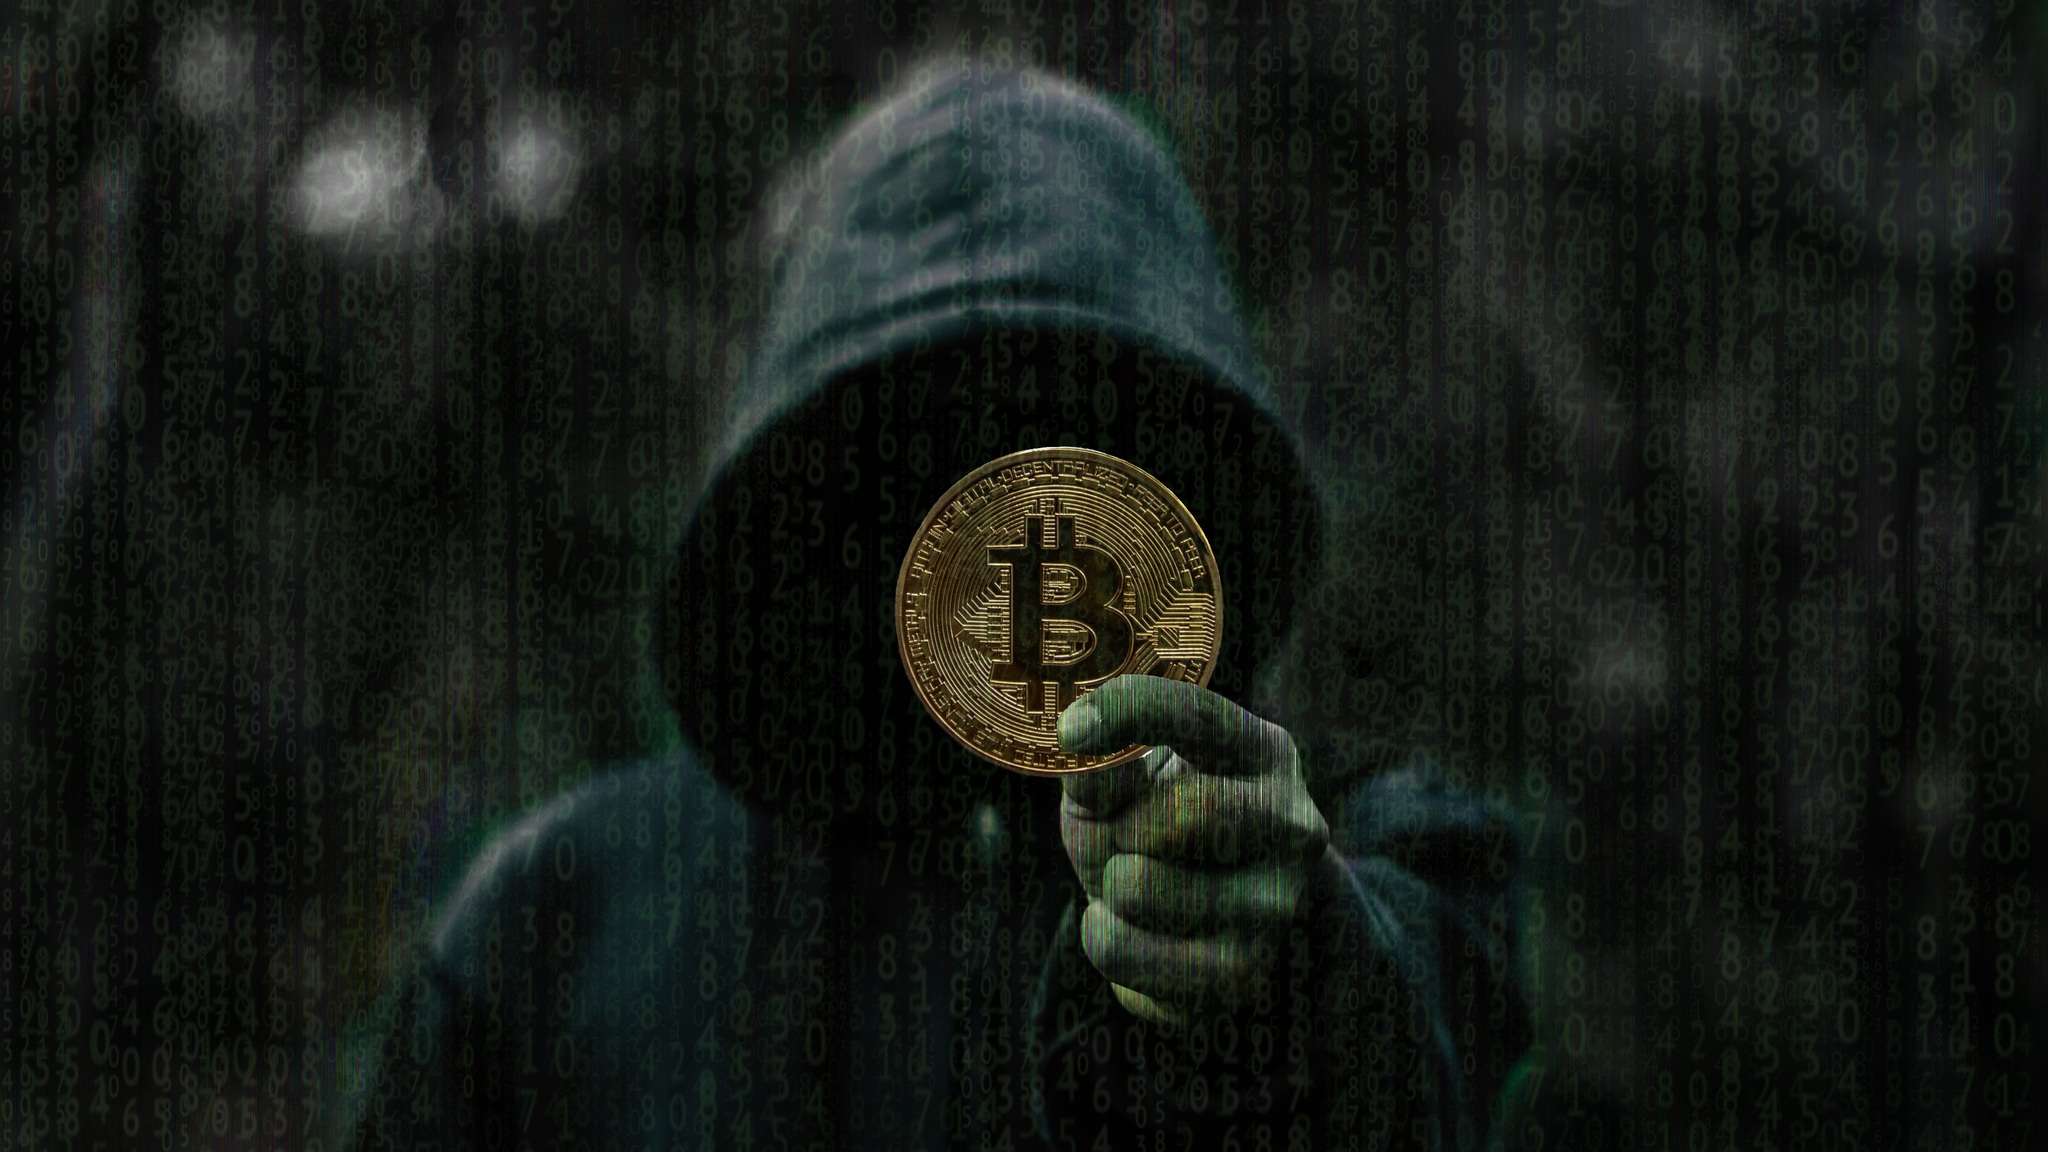 2048x1152 Bitcoin Cryptocurrency 5k 2048x1152 Resolution Hd 4k Wallpapers Images Backgrounds Photos And Pictures